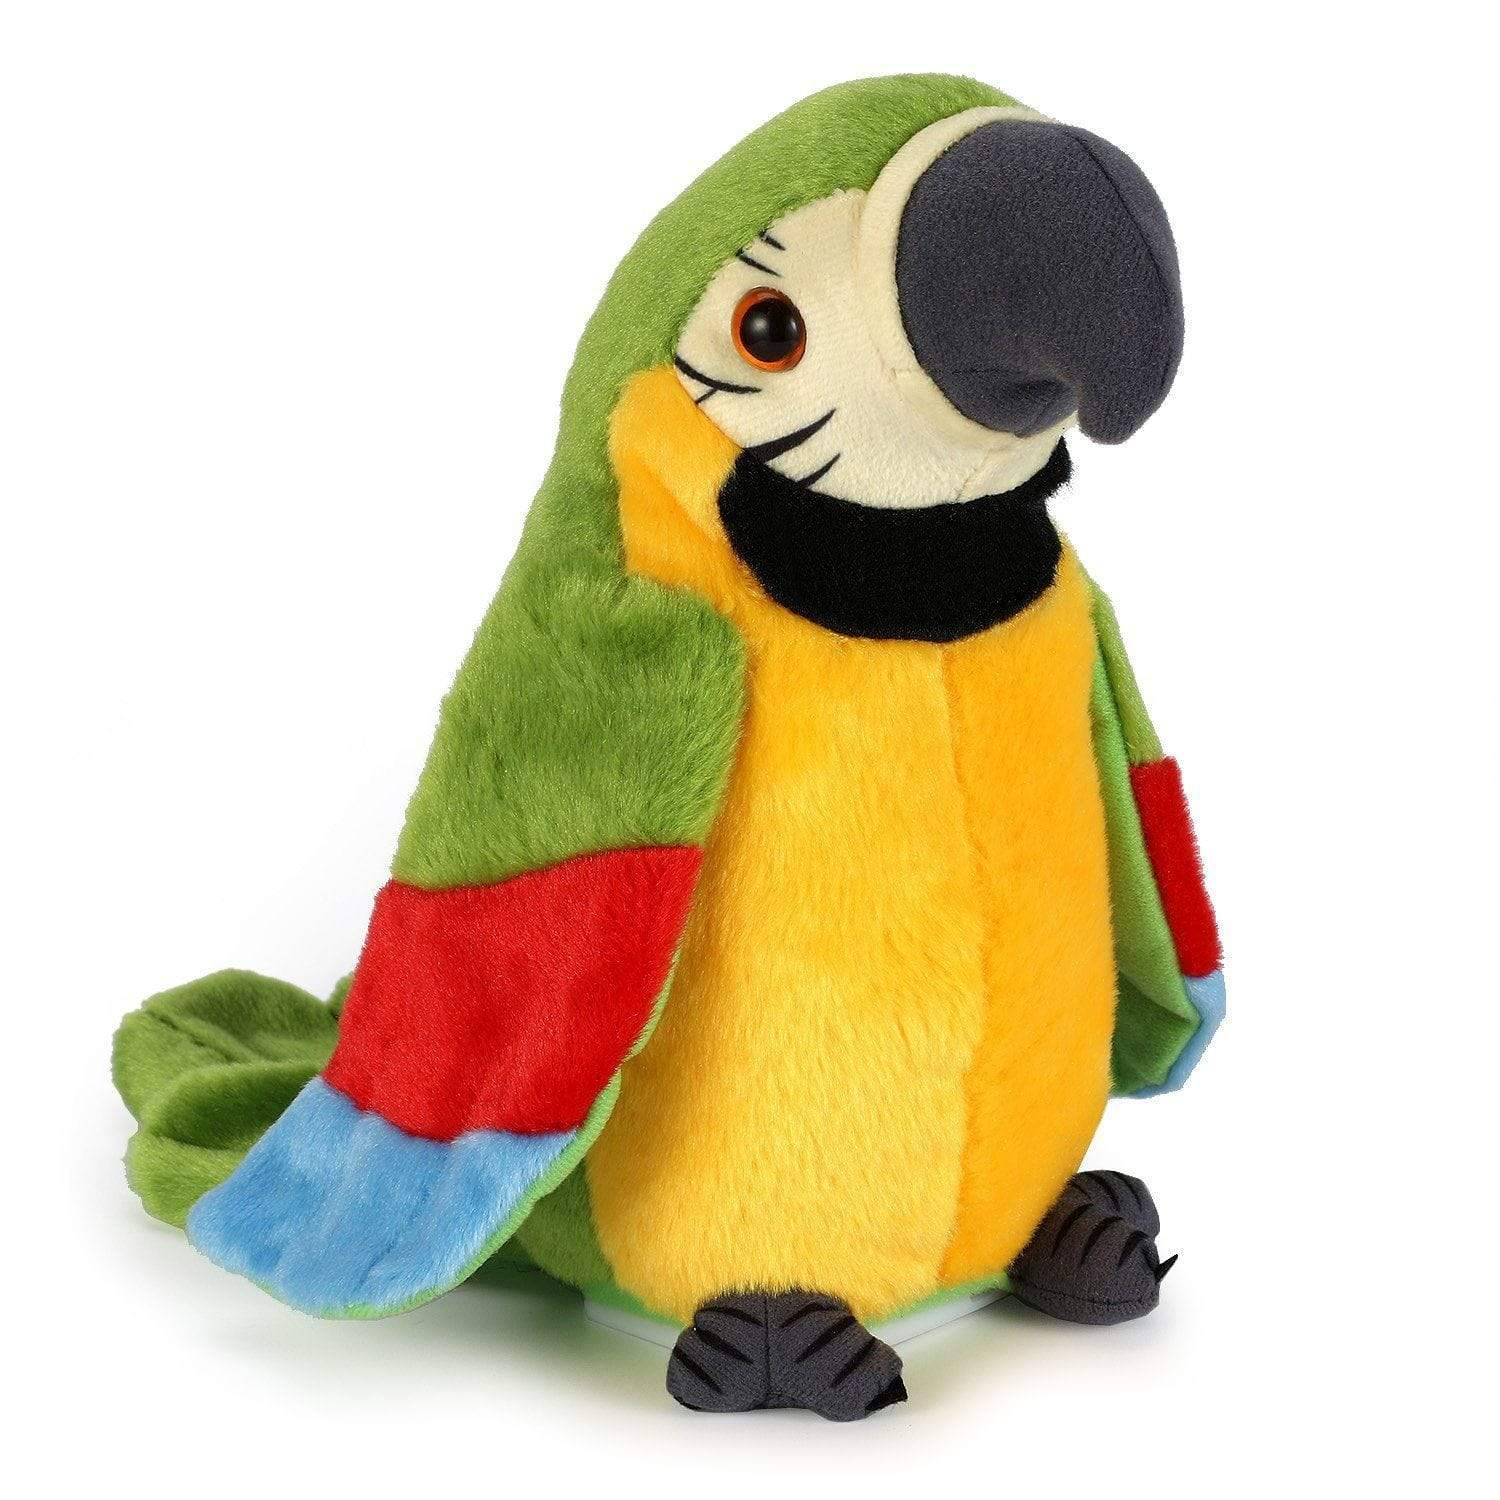 Horizon Care Plush Parrot Interactive Toy